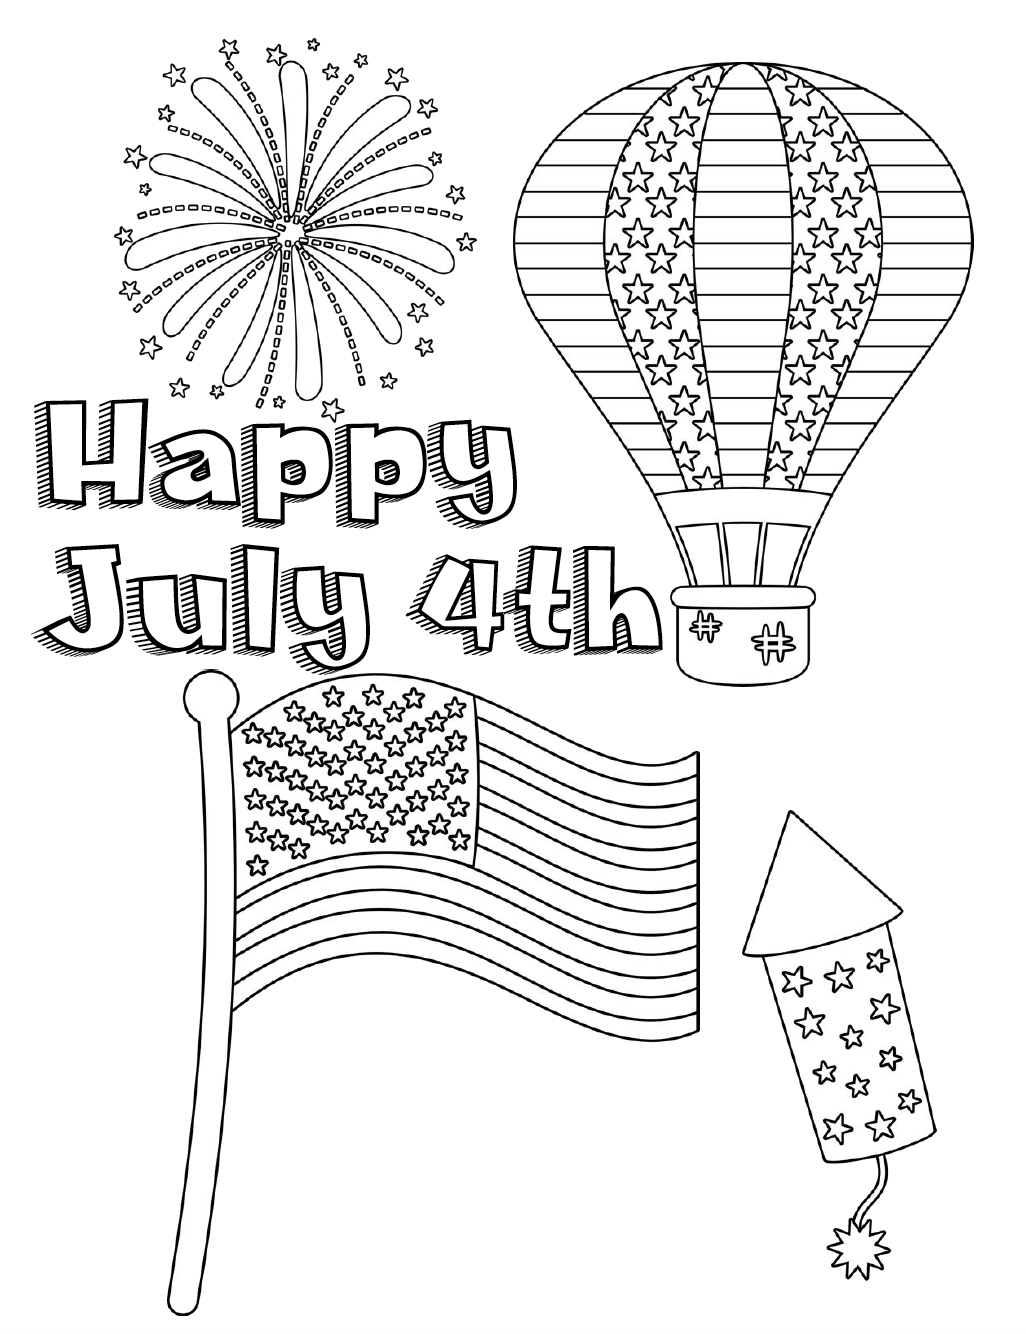 4 of july coloring sheets 5 free fourth of july coloring pages july sheets 4 of coloring